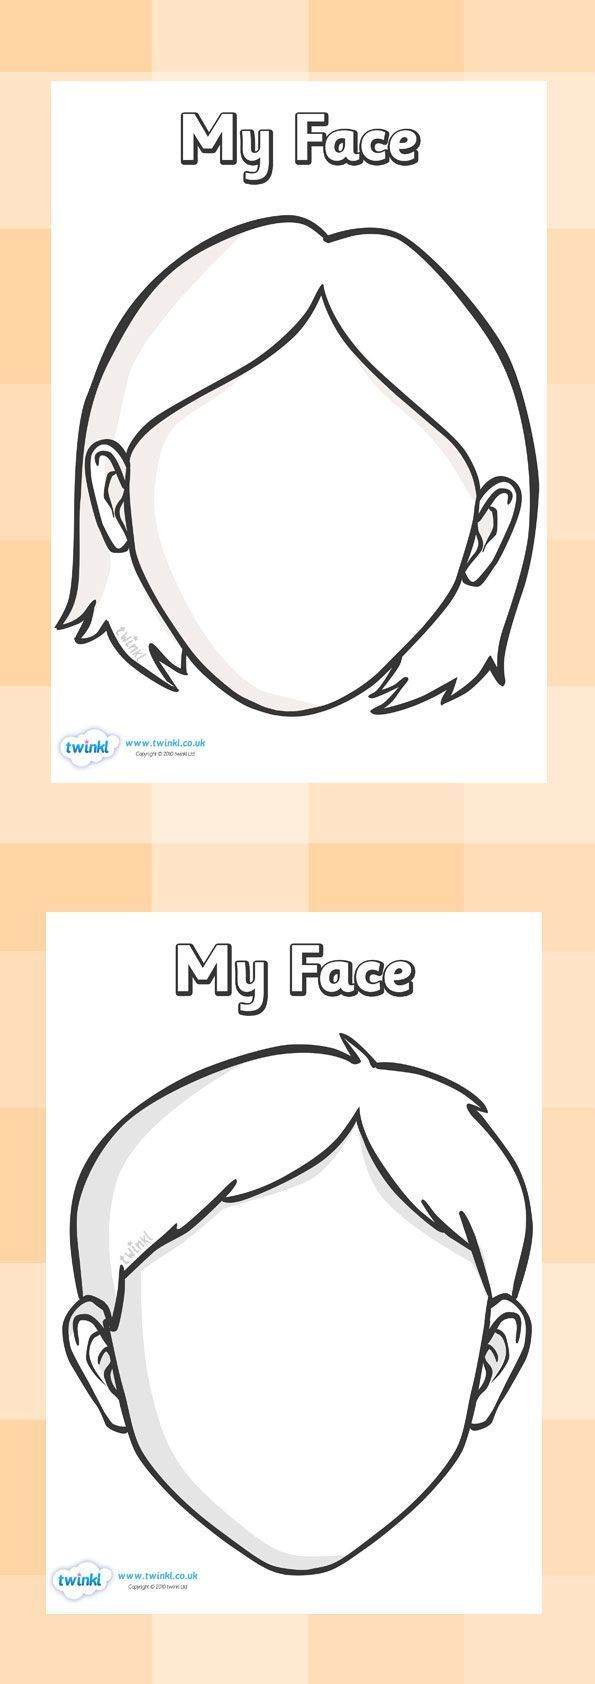 Blank Faces Templates. Free Printables   Children Can Draw Things That  U0027representu0027 Them  Blank Face Templates